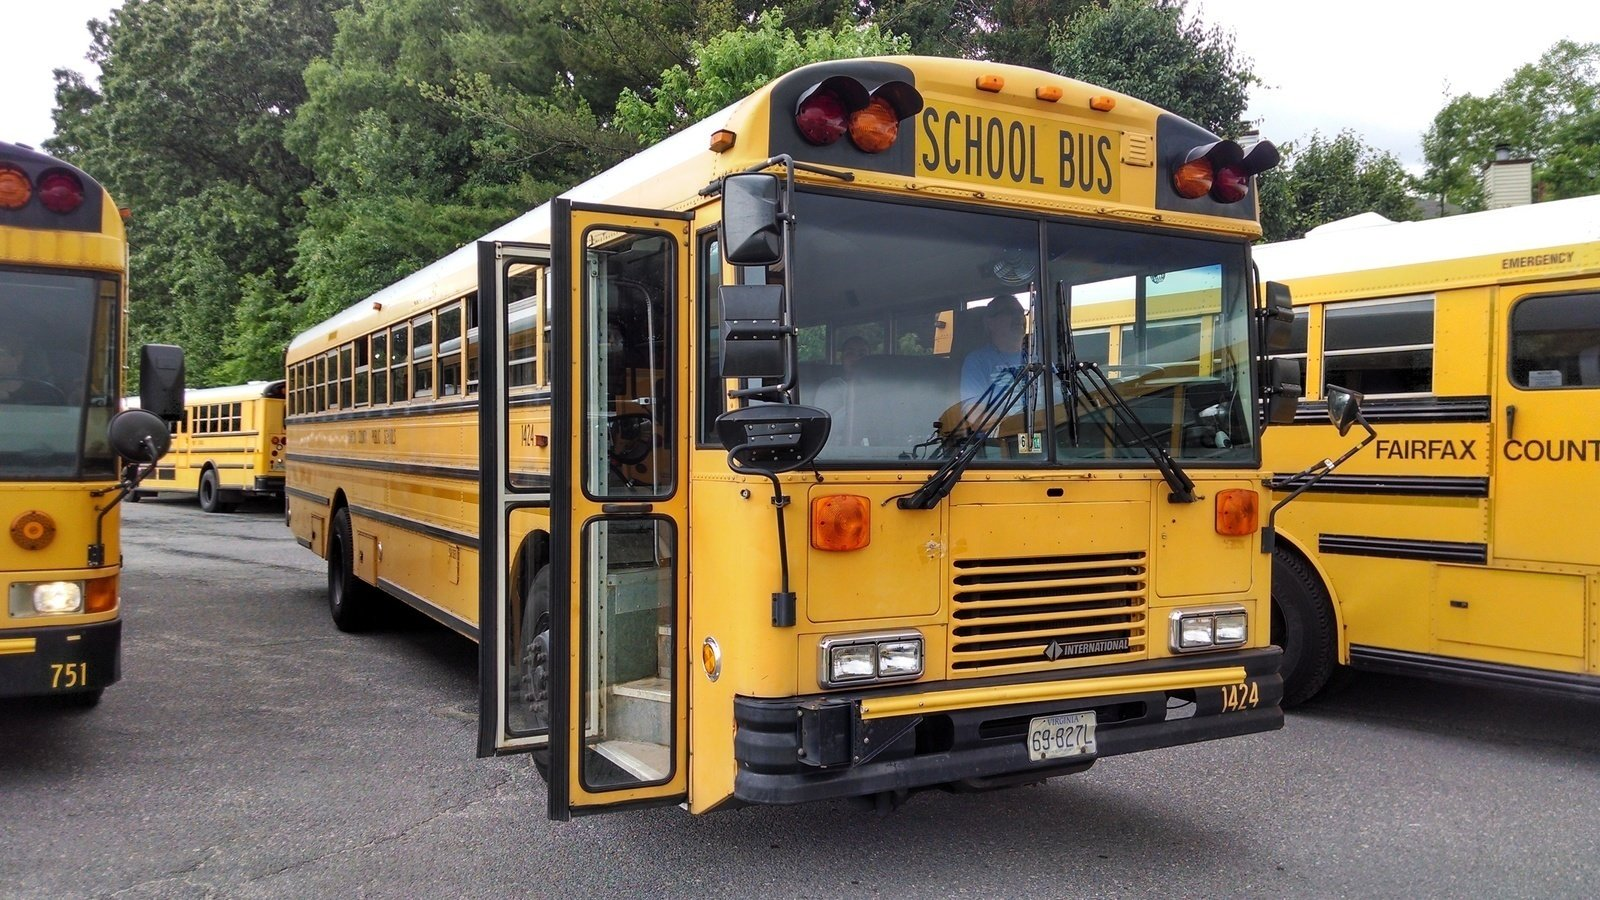 Petition 183 Fcps Save Aap Center Schools And Save Bus